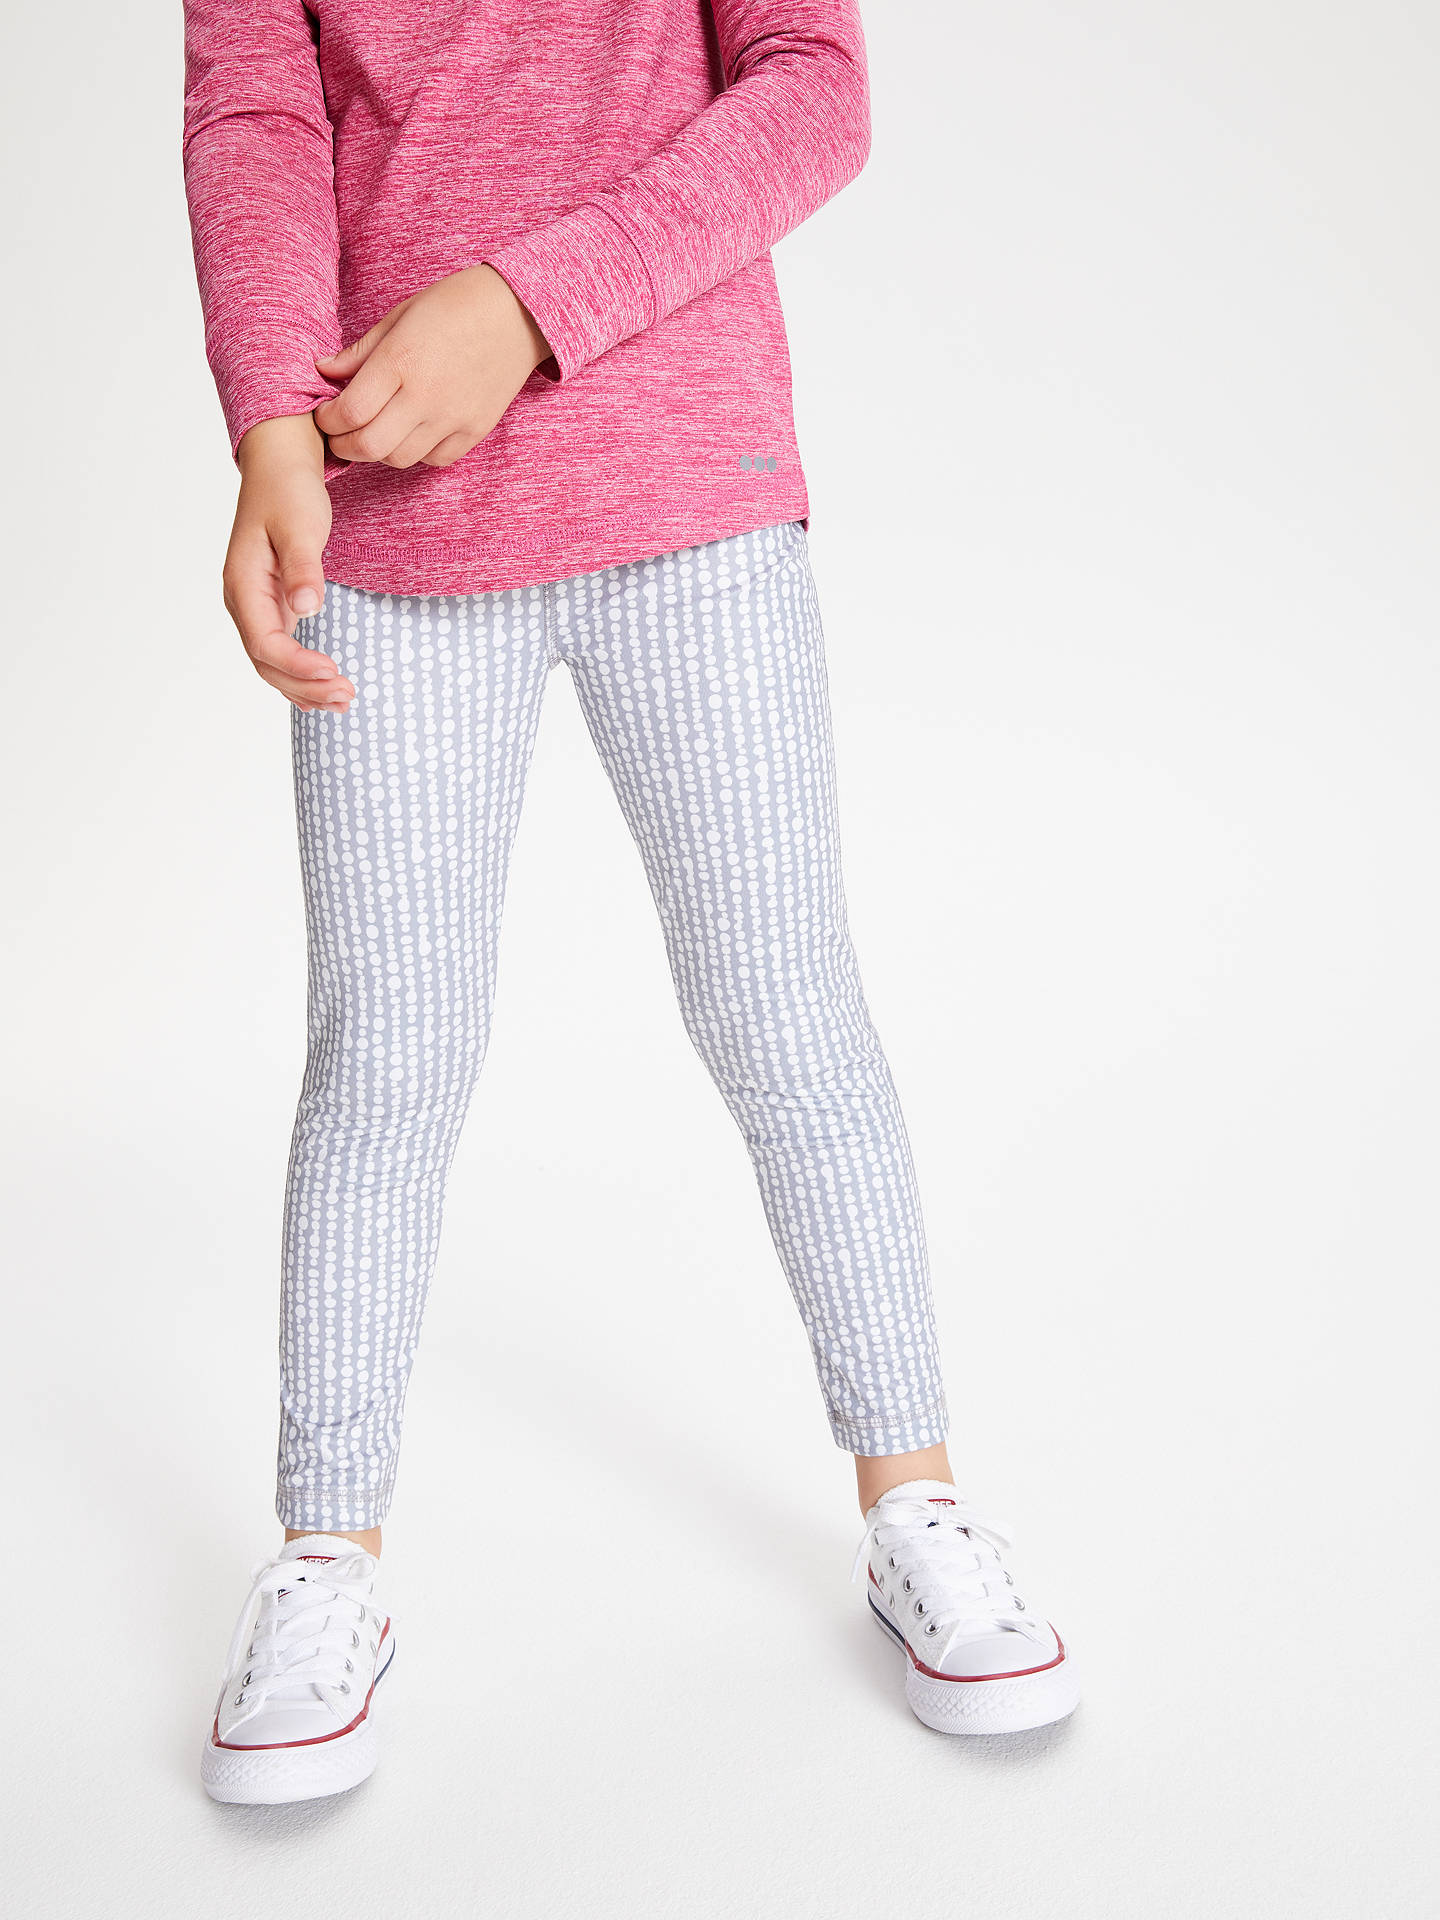 Buy John Lewis & Partners Girls' Geo Spot Leggings, Grey, 5 years Online at johnlewis.com